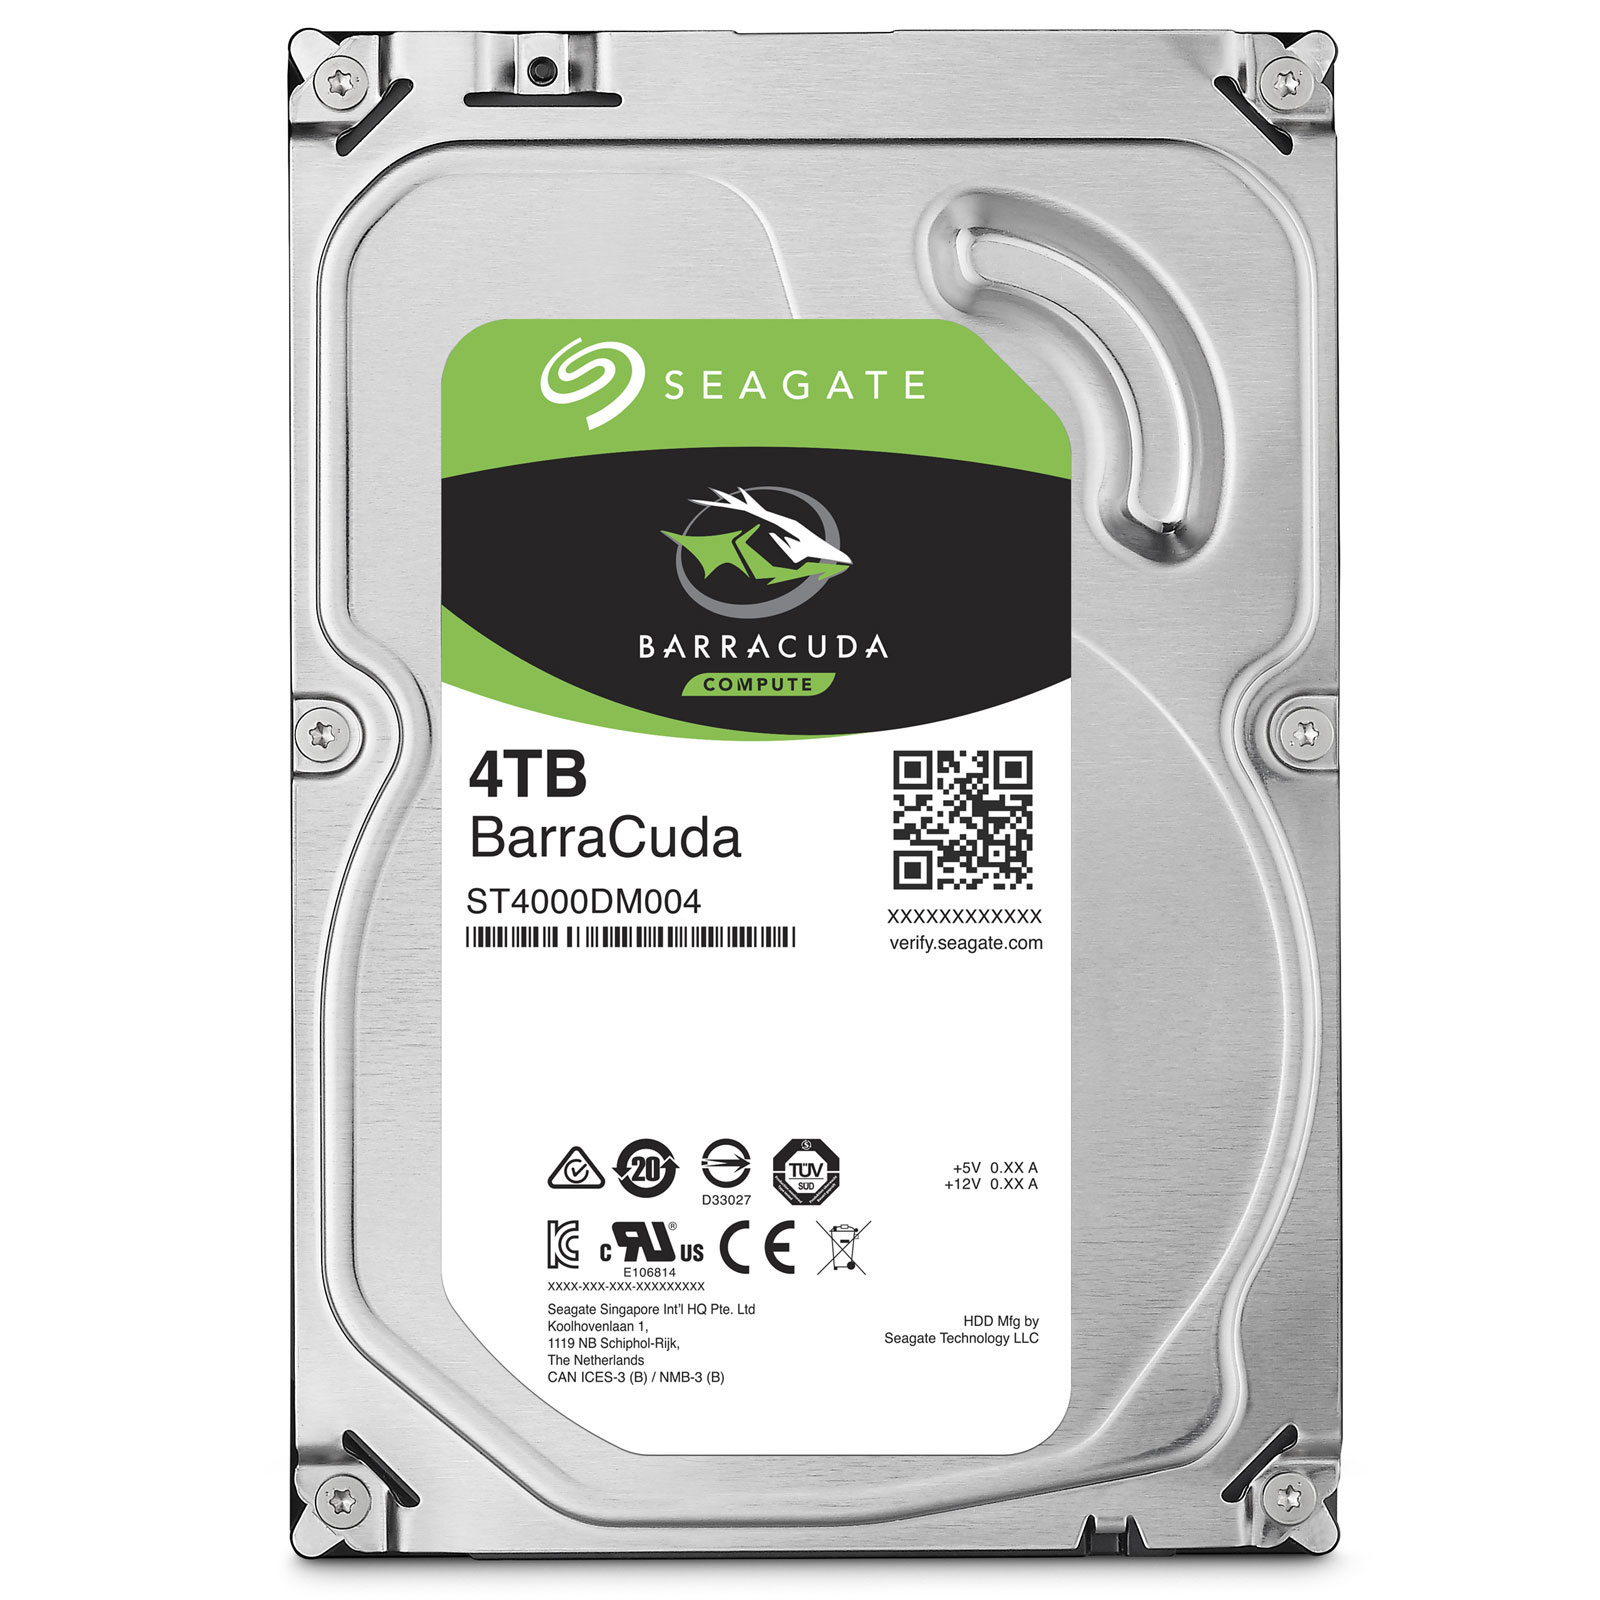 "Seagate 4To 5400tr SATA III 256Mo Barracuda ST4000DM004 - Disque dur interne 3.5"" - 0"